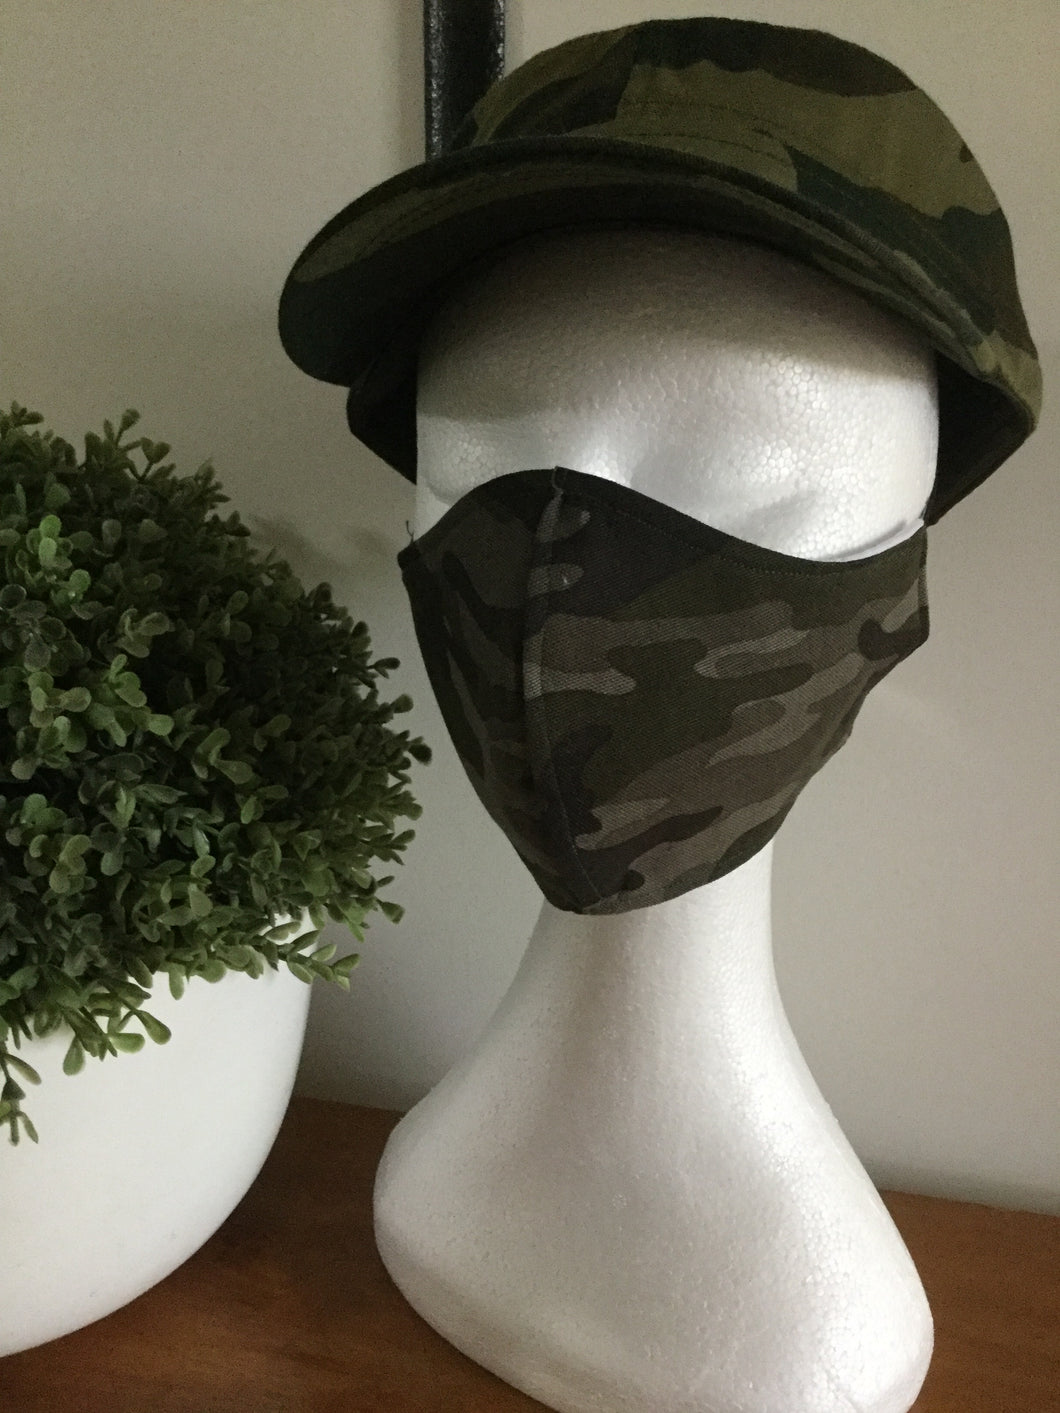 Men's Cotton Face Mask Navy Blue,Khaki Green, Black  or Camouflage- Non Surgical